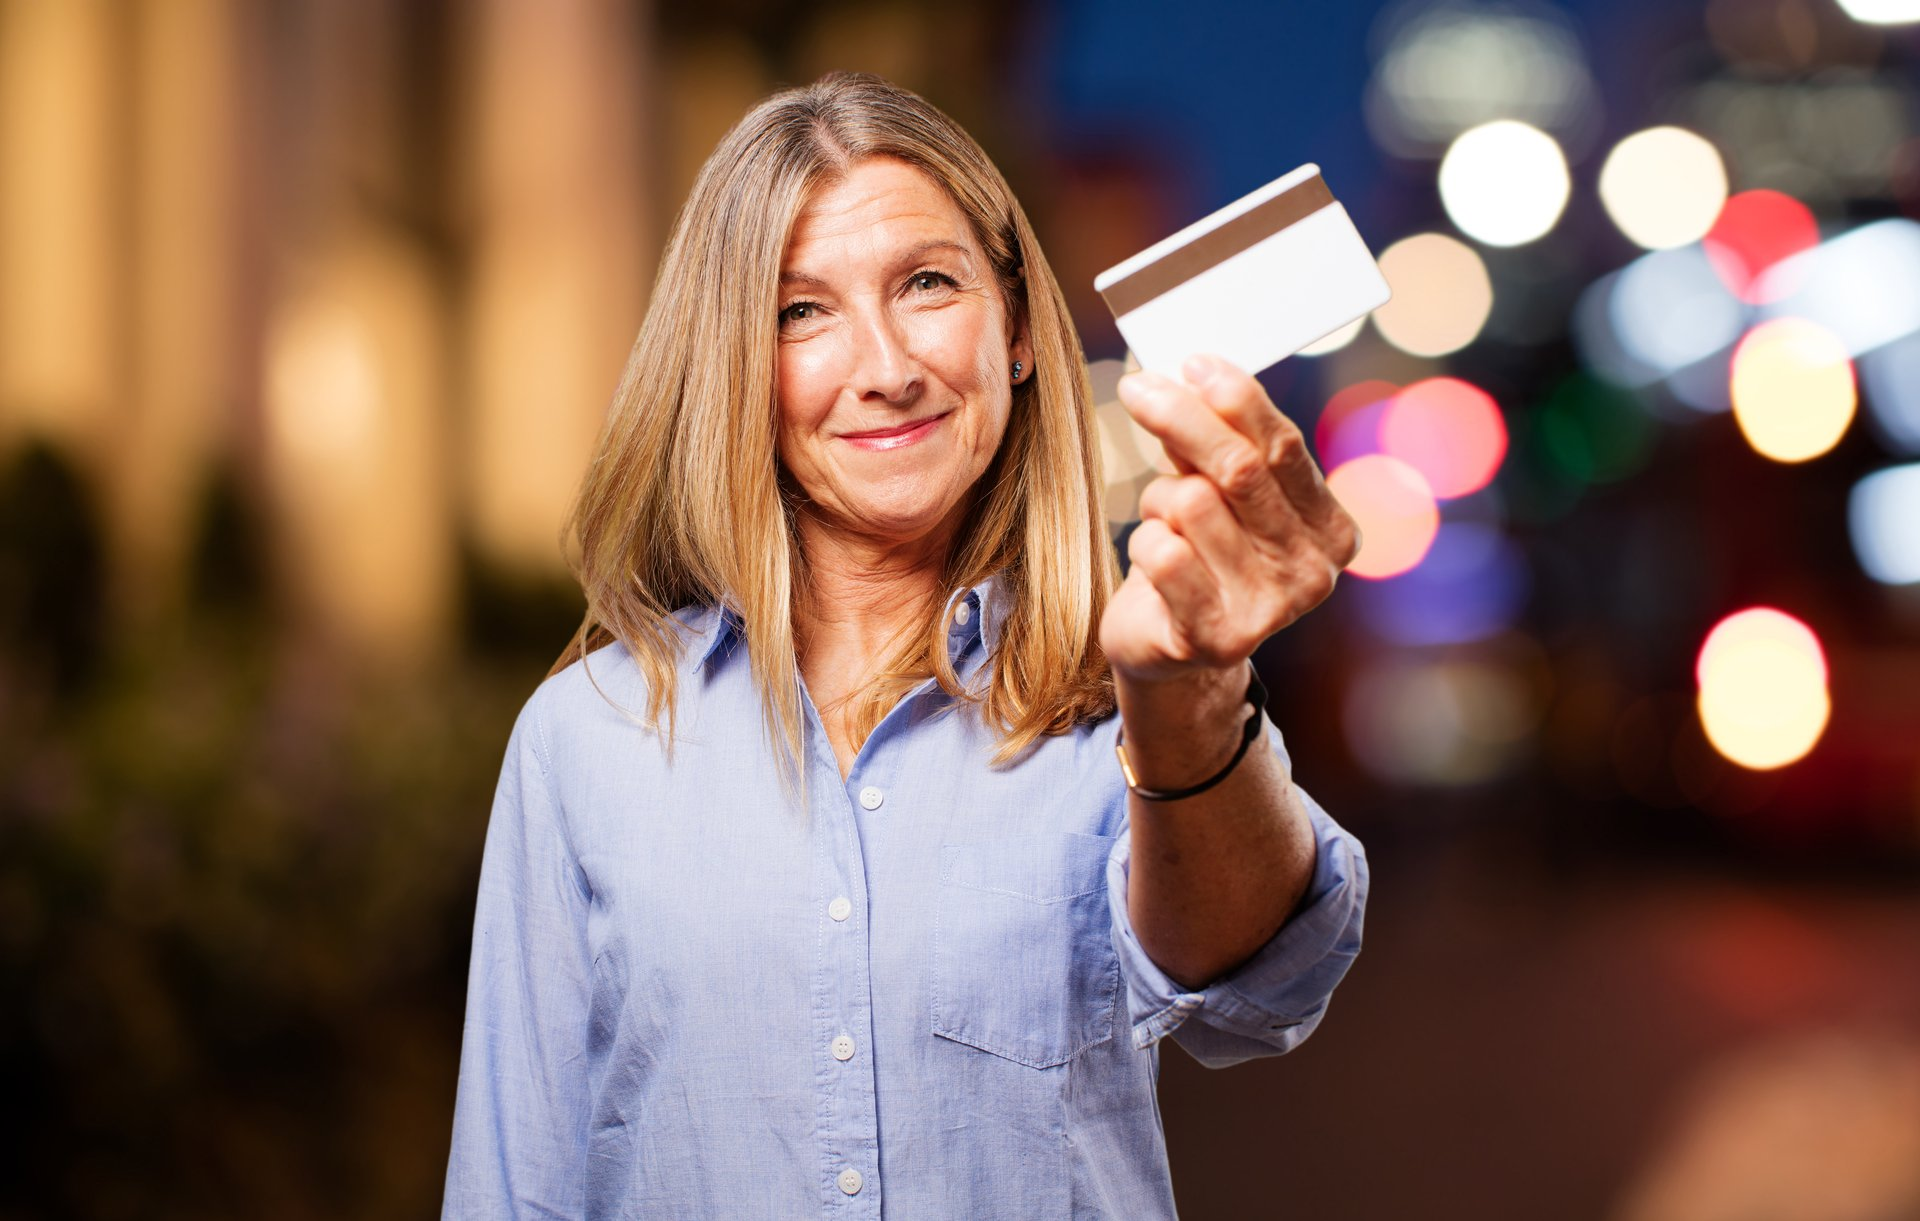 A senior woman holds up a credit card